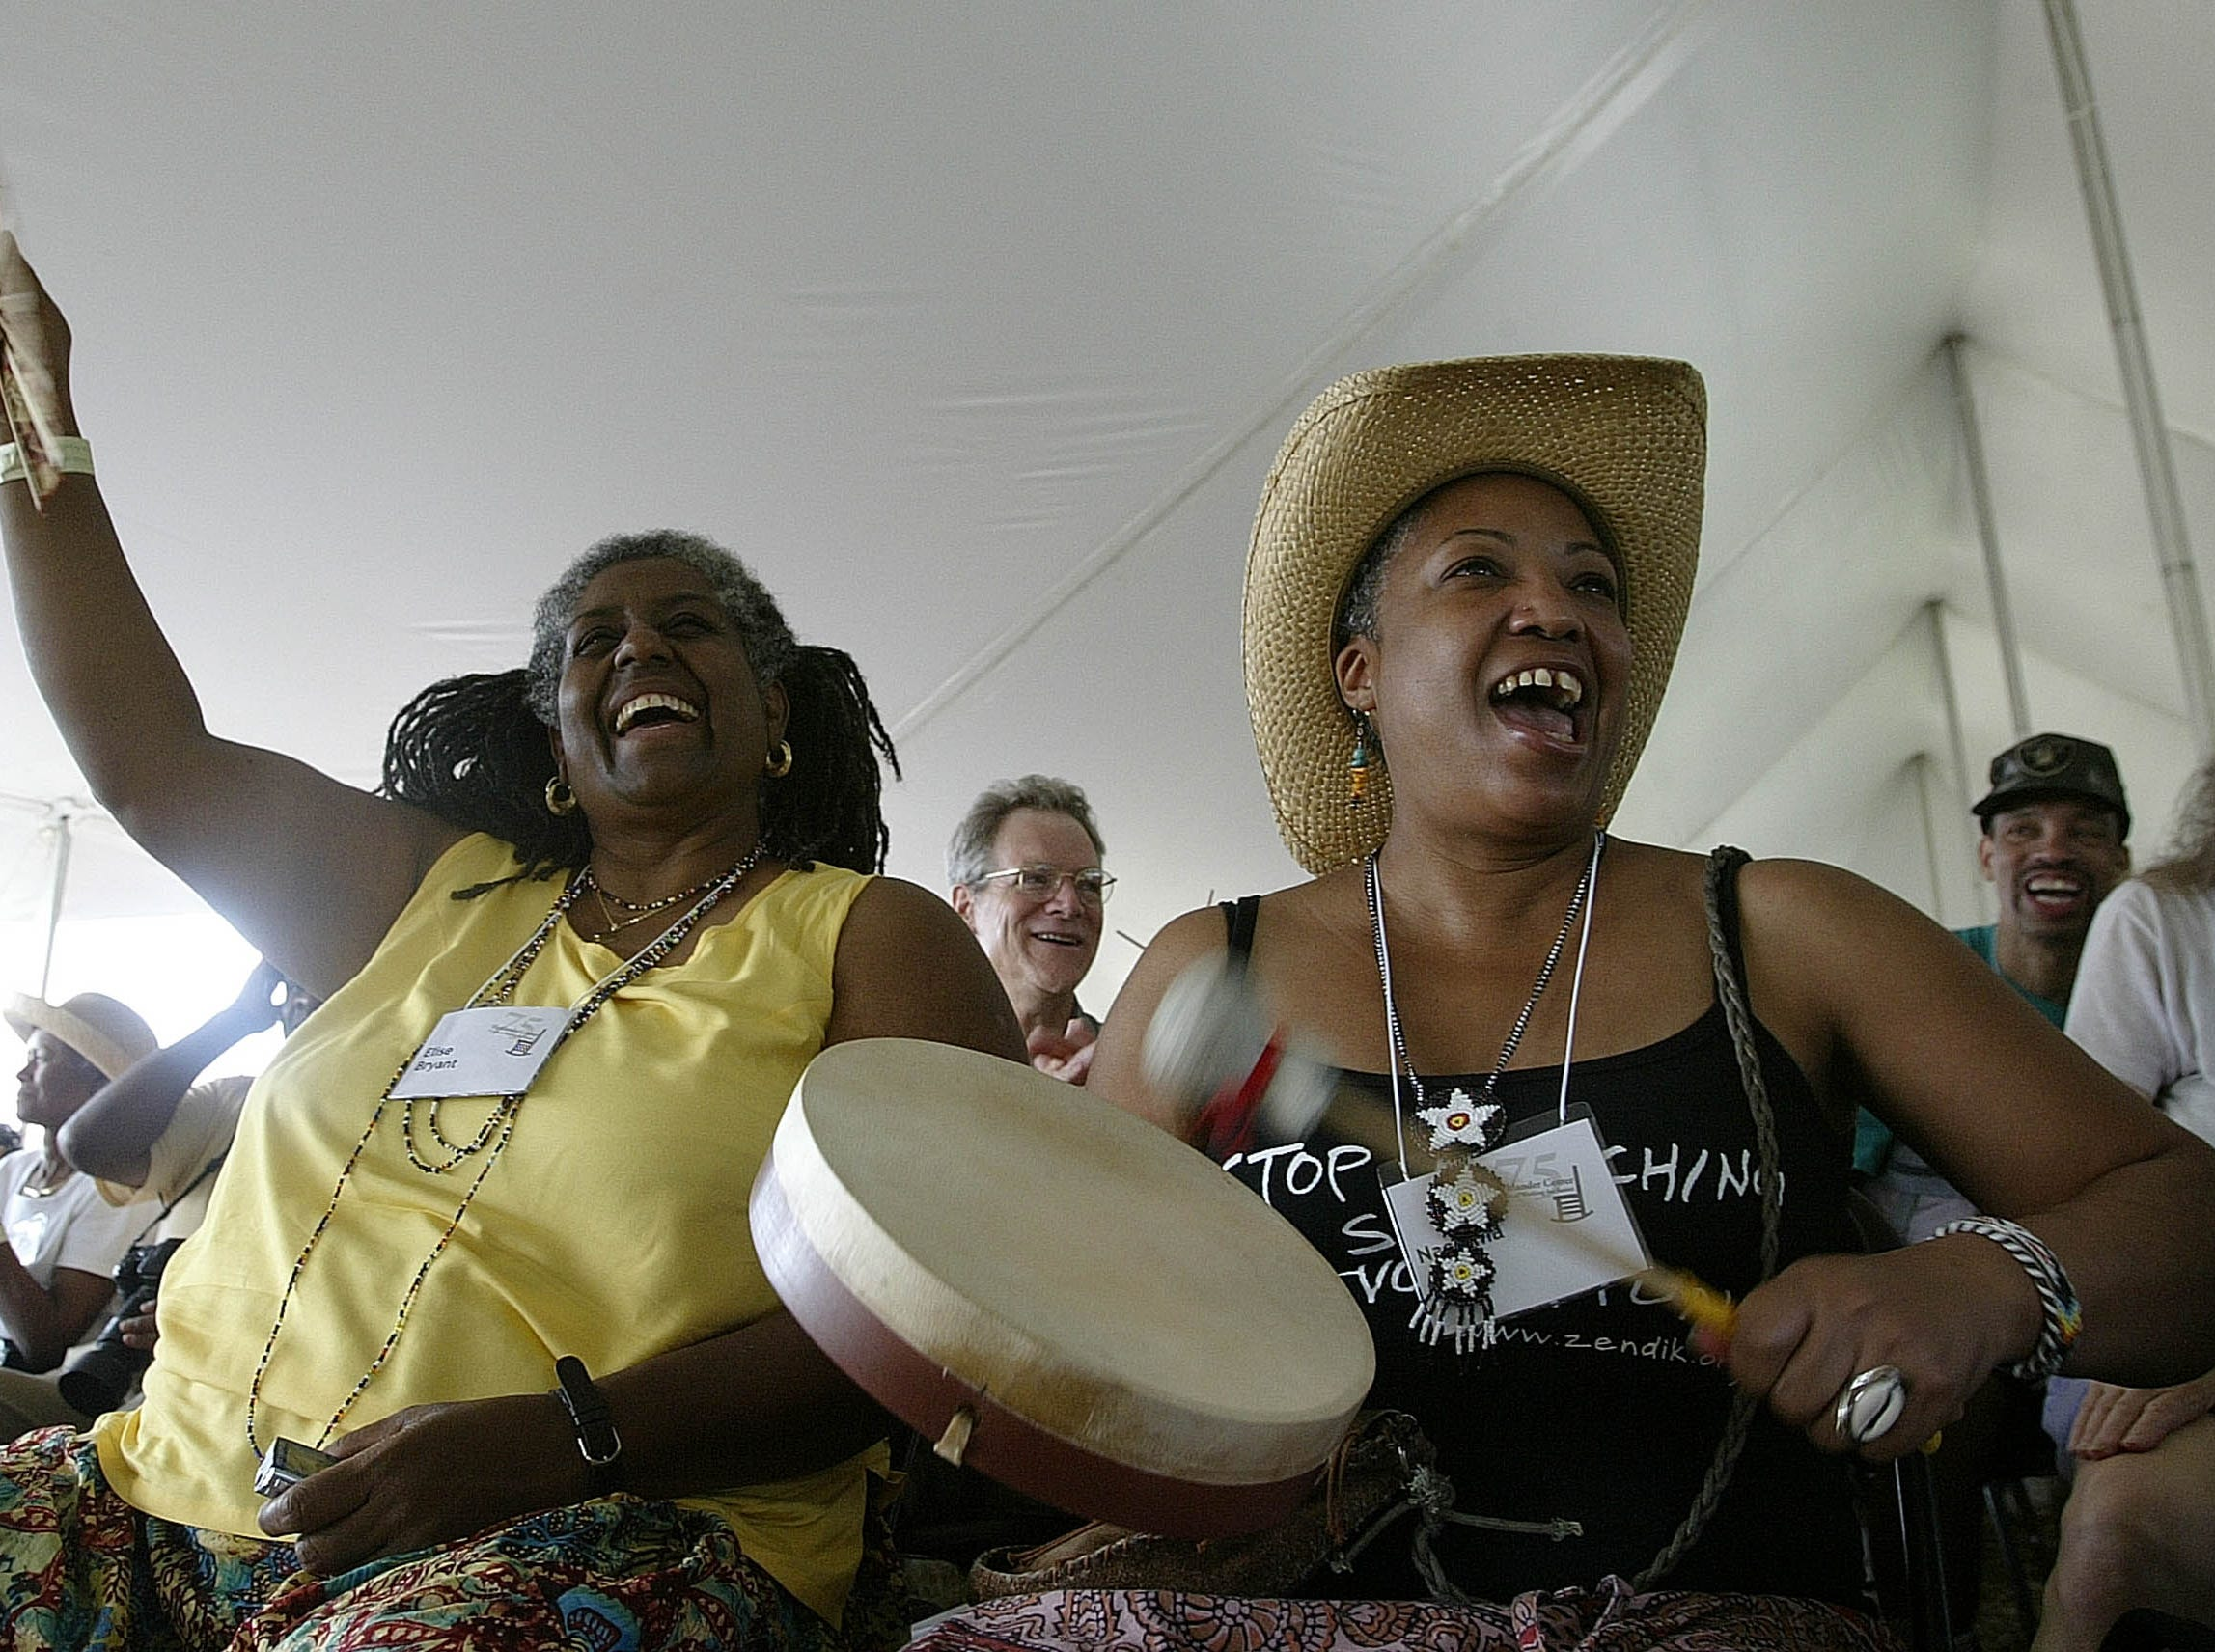 Elise Bryant, left, and Naazima Ali celebrate during a   gathering held to mark the  anniversary of the Highlander Research and Education Center, Sept. 1, 2007 in New Market, Tenn.  It has been investigated by the House Committee on Un-American Activities, spied on by a governor of Georgia and marched on by the Klan, but the Highlander Research and Education Center has stuck around.